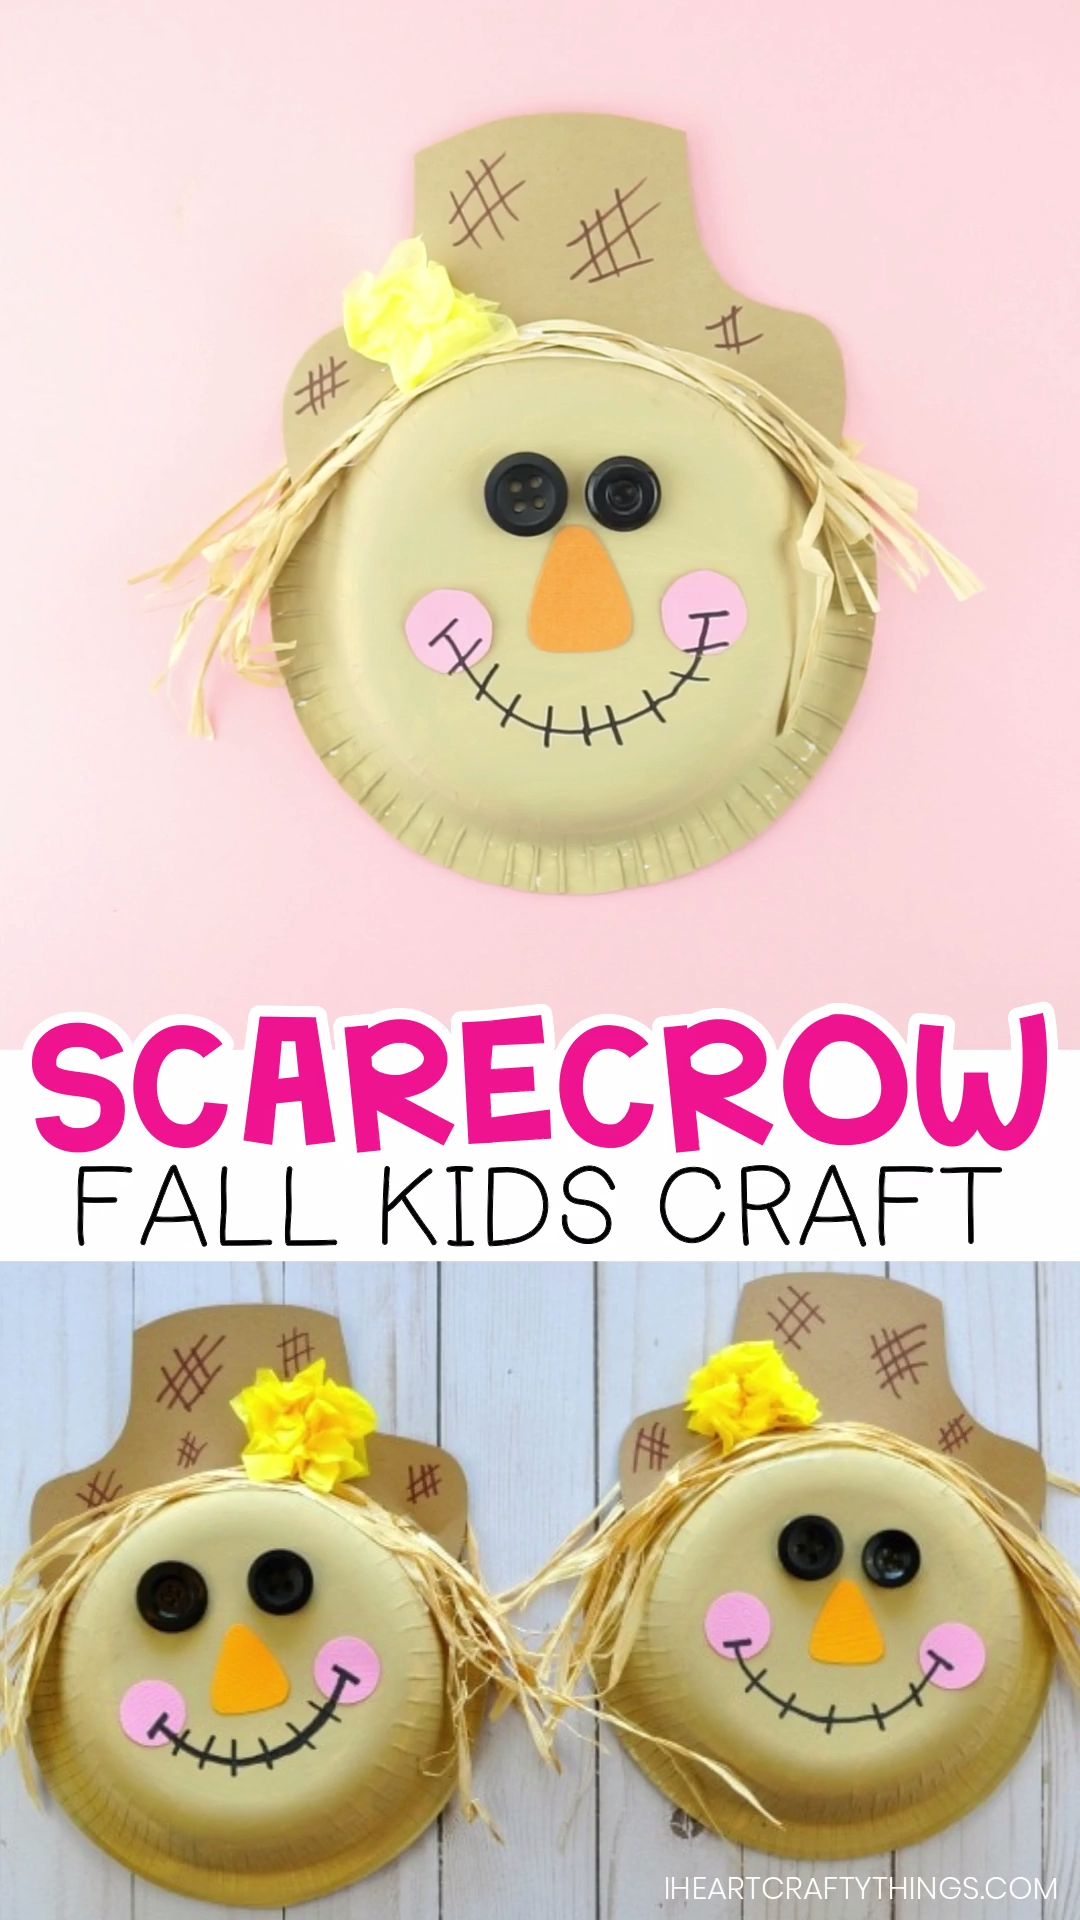 How to Make a Paper Bowl Scarecrow Craft